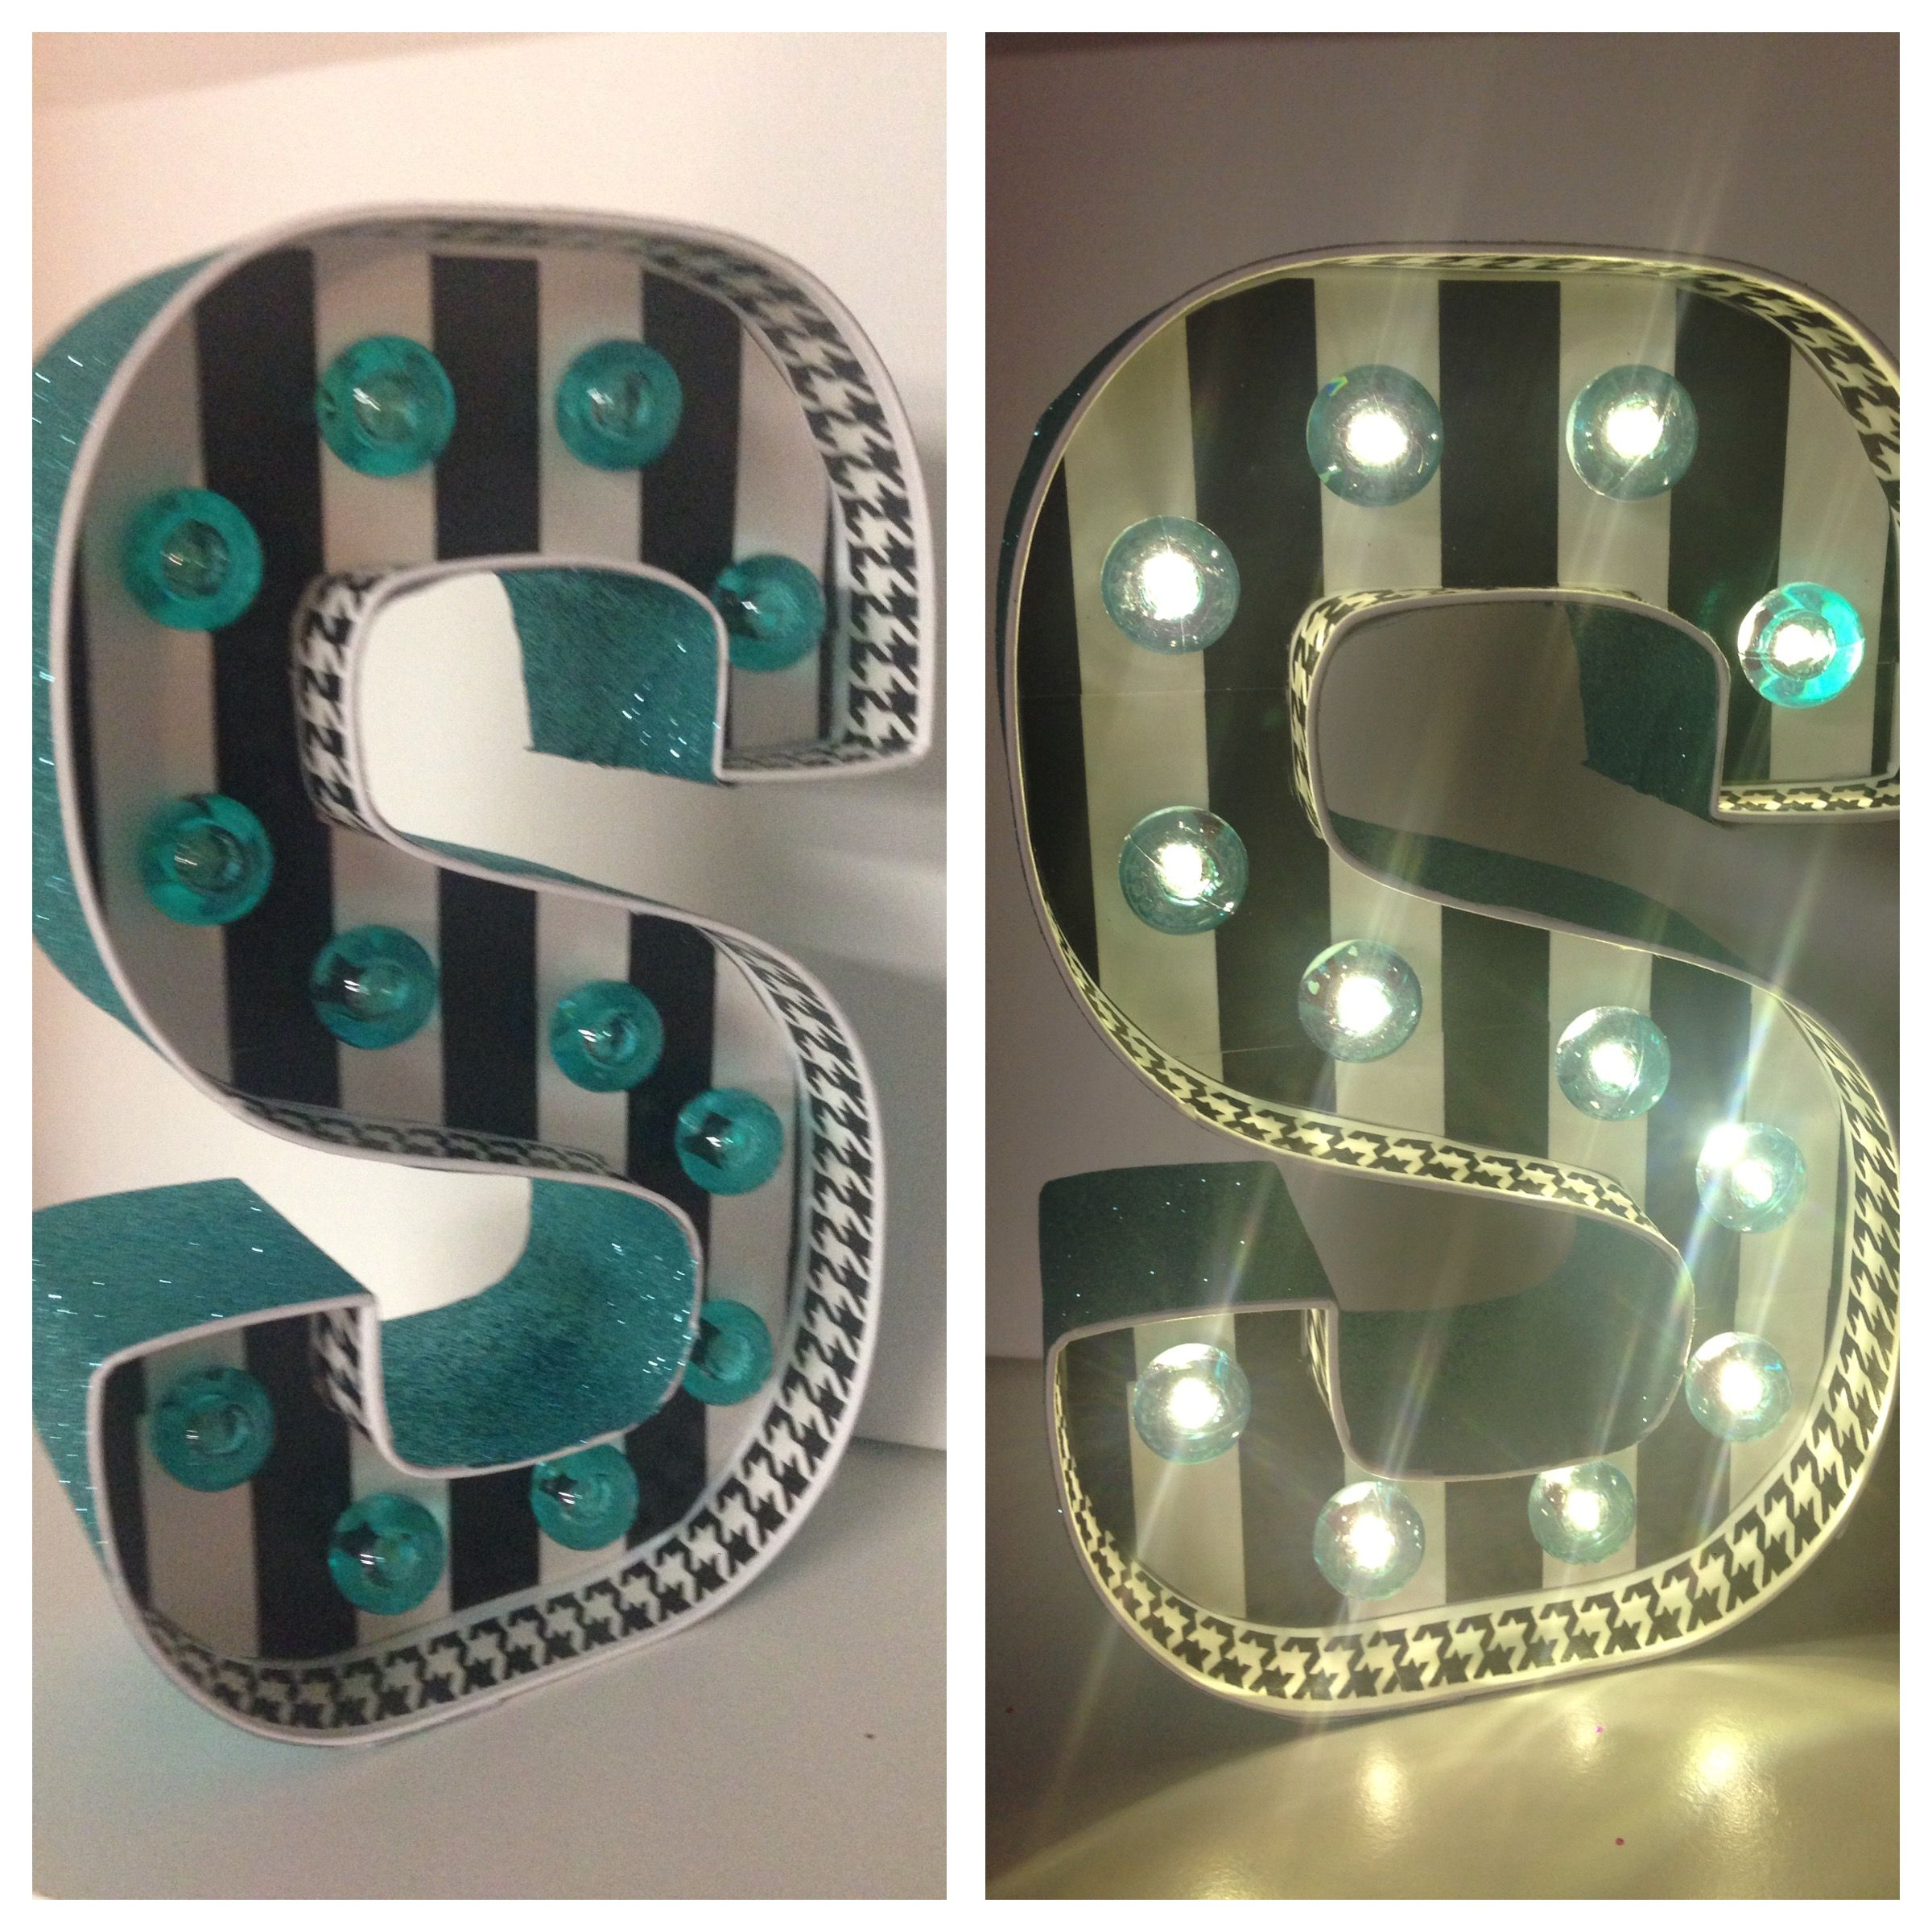 We love the Marquee Letters by Heidi Swapp!!  This was so simple to make and I love how it turned out.  I used all the Heidi Swapp tape to decorate it!!